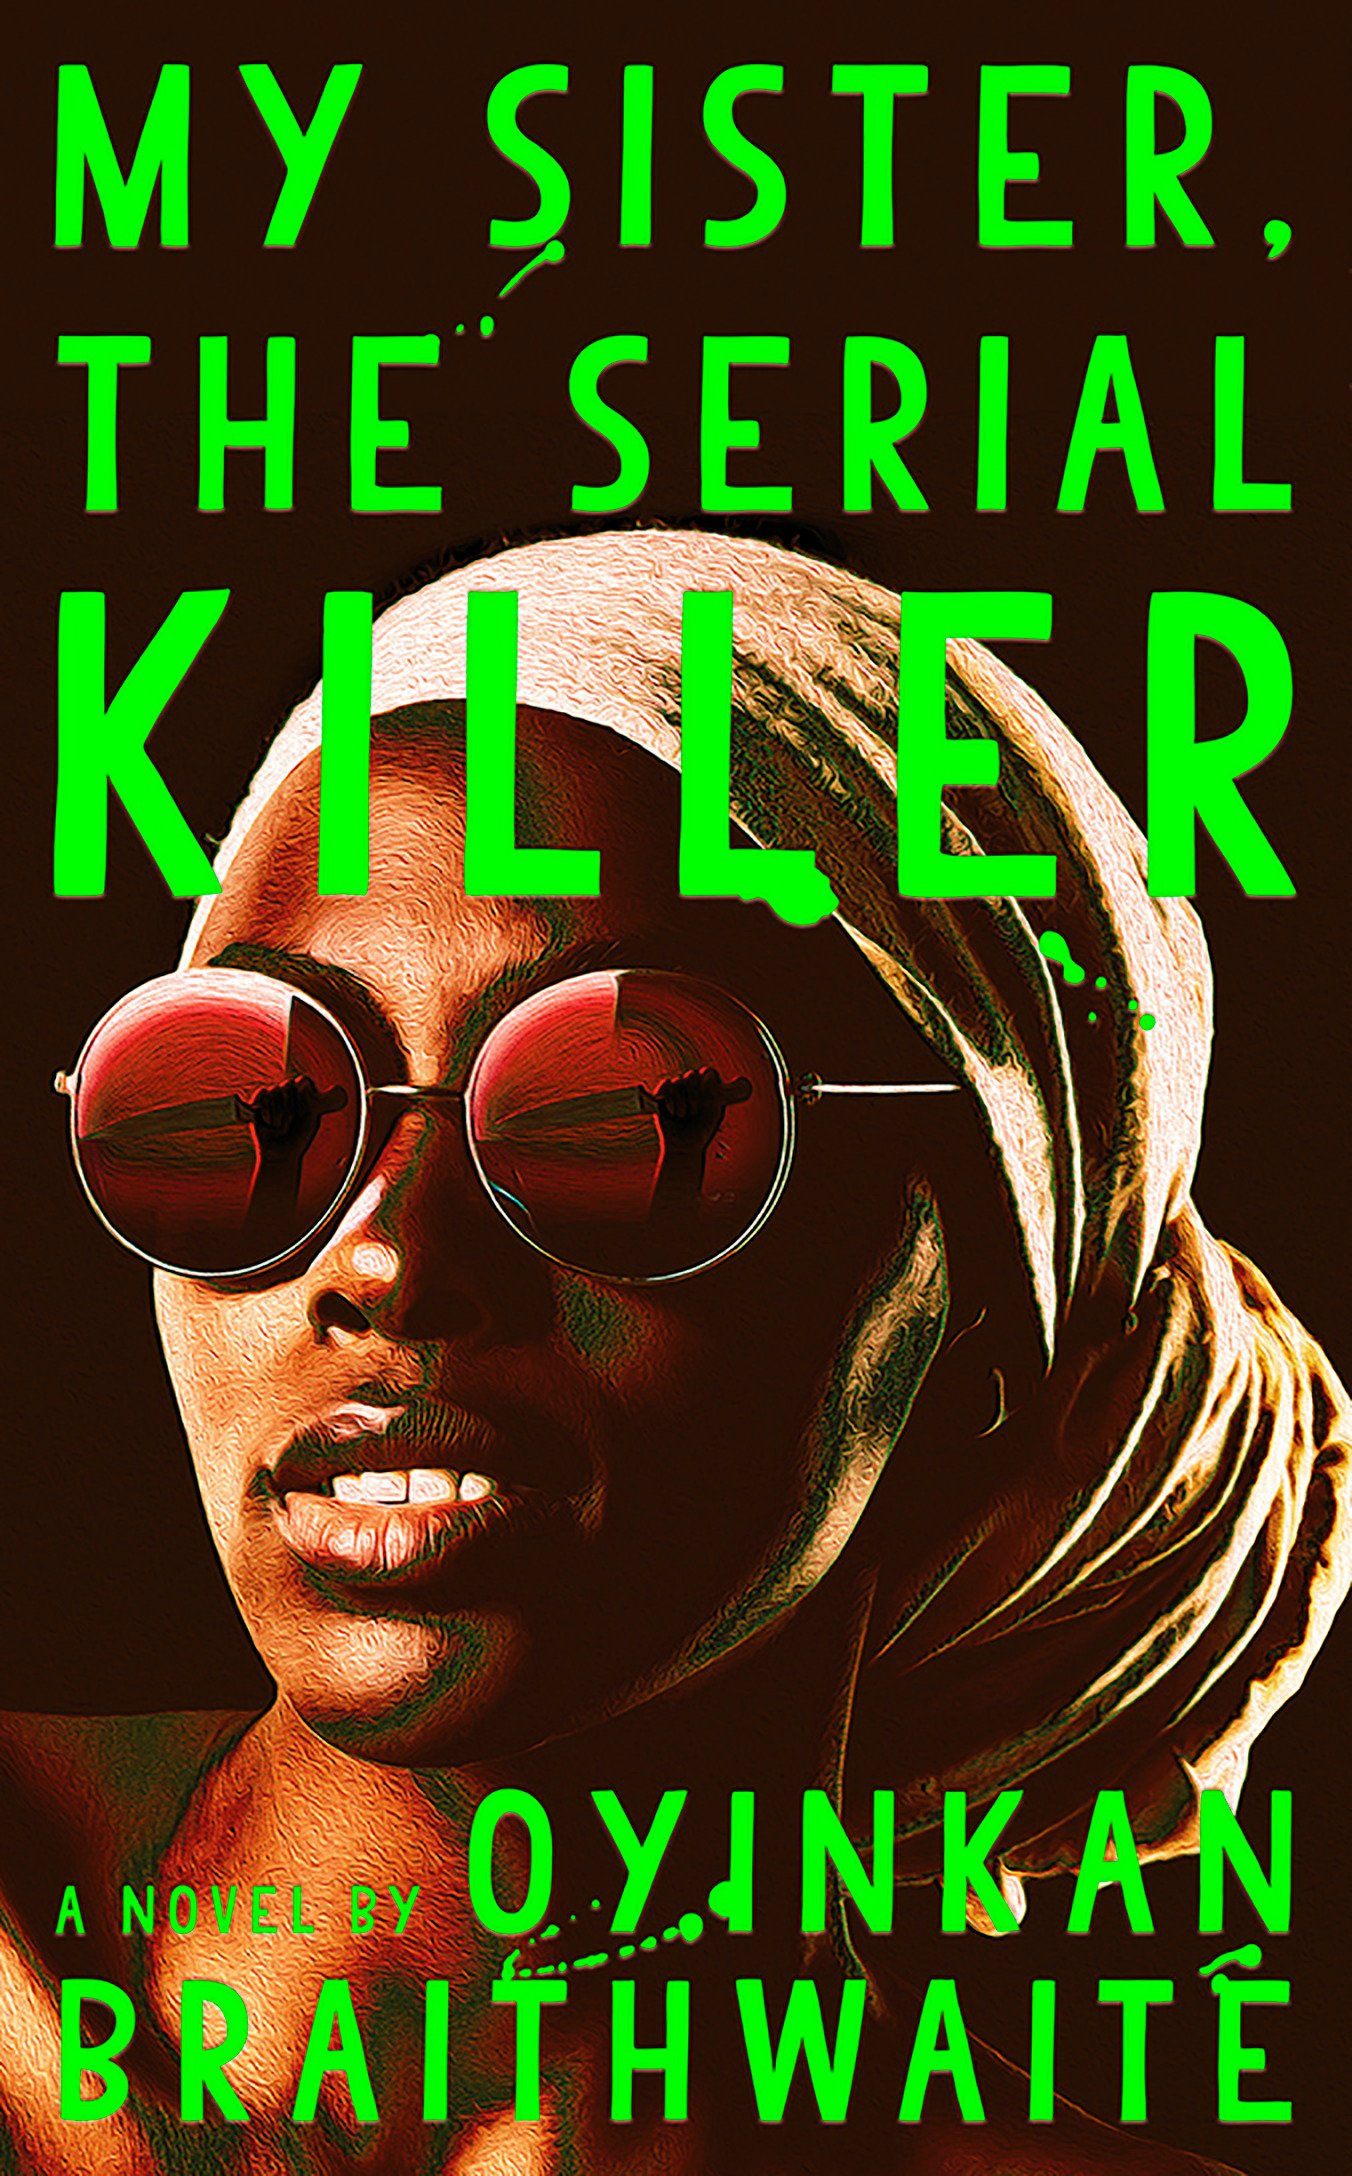 My Sister, the Serial Killer: Amazon.co.uk: Oyinkan Braithwaite ...